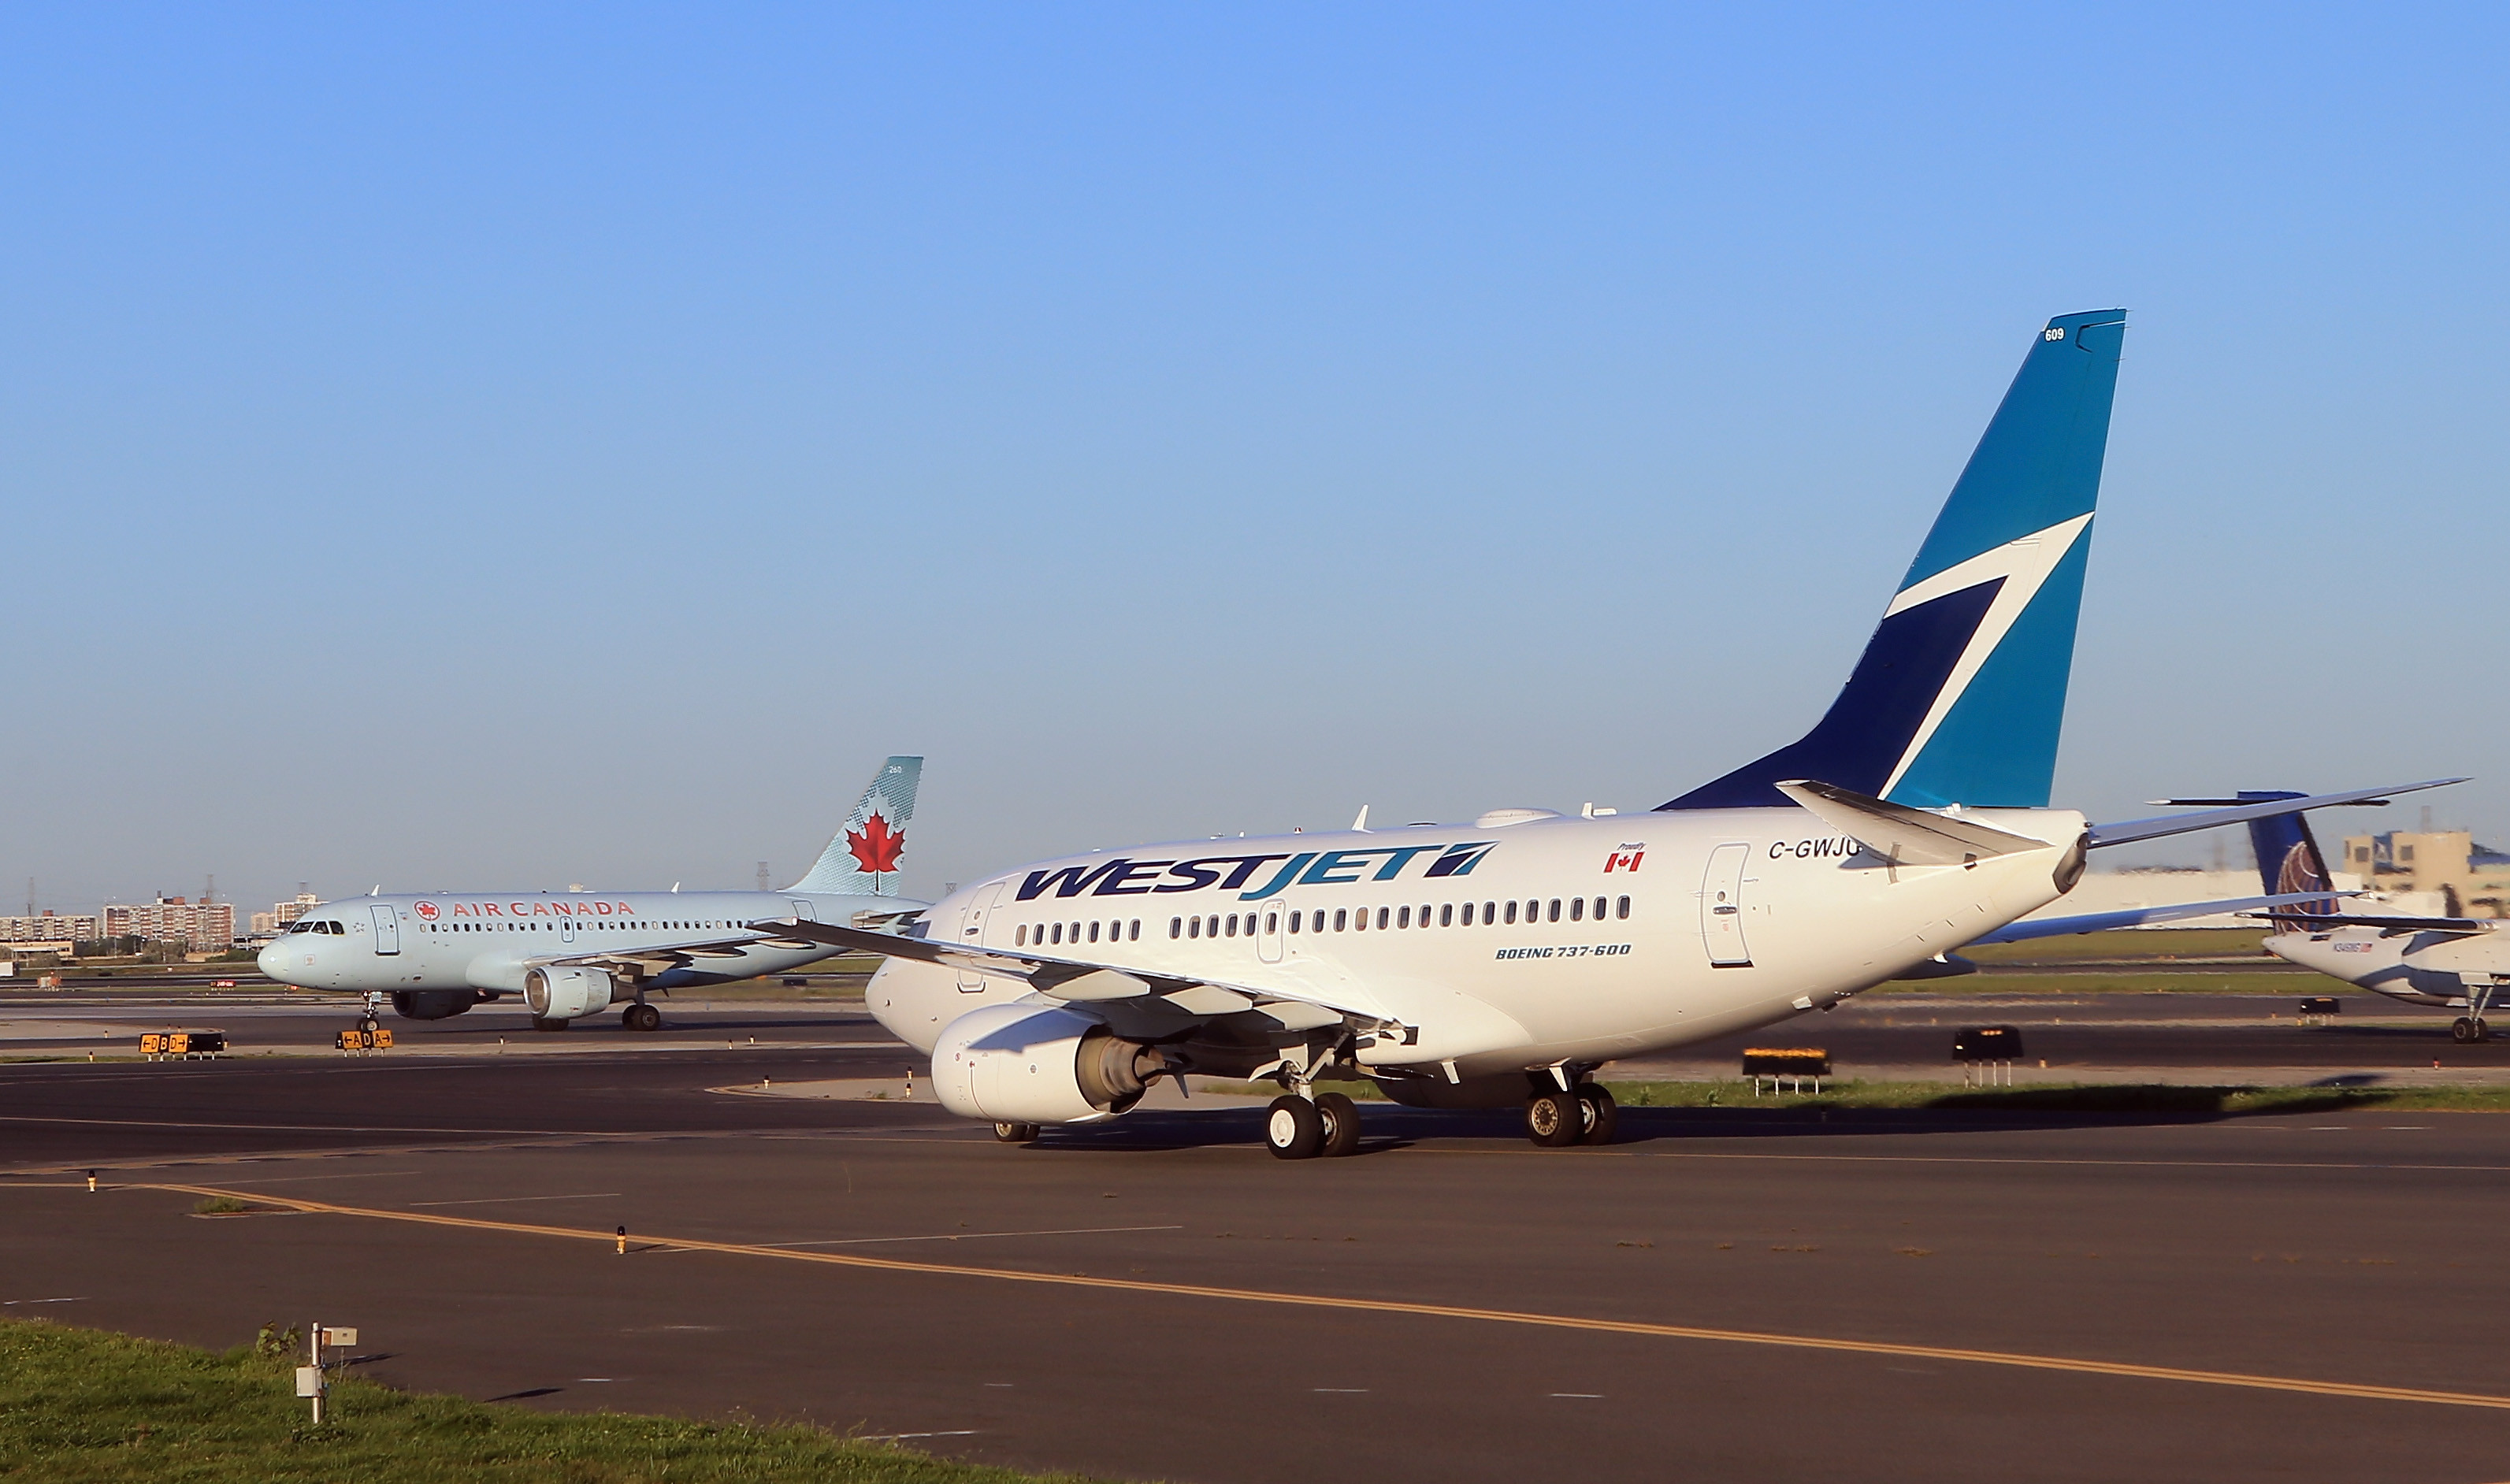 westjet plus seating confusion